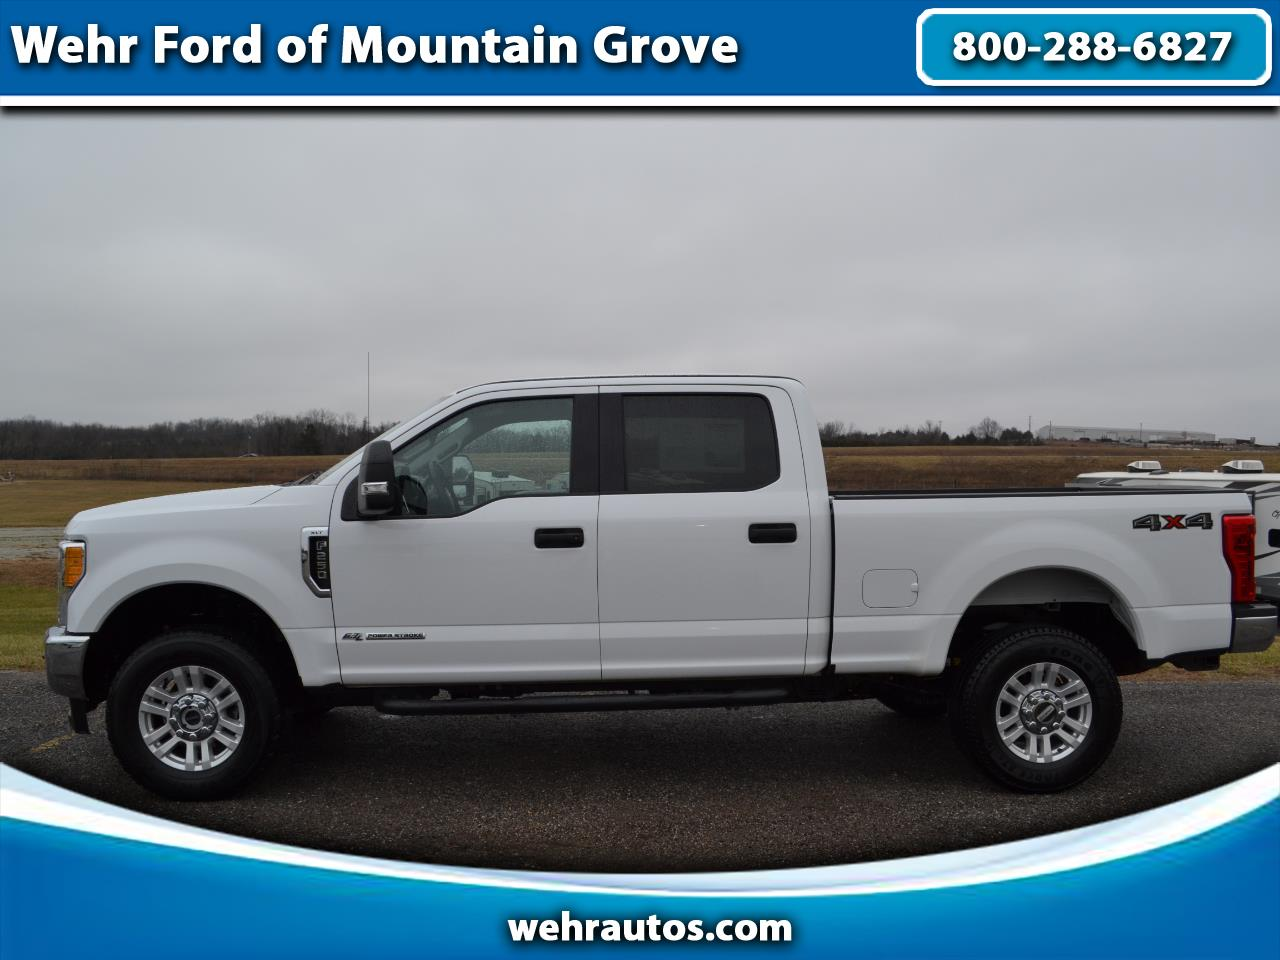 2017 Ford Super Duty F-250 XLT 4WD CREW CAB